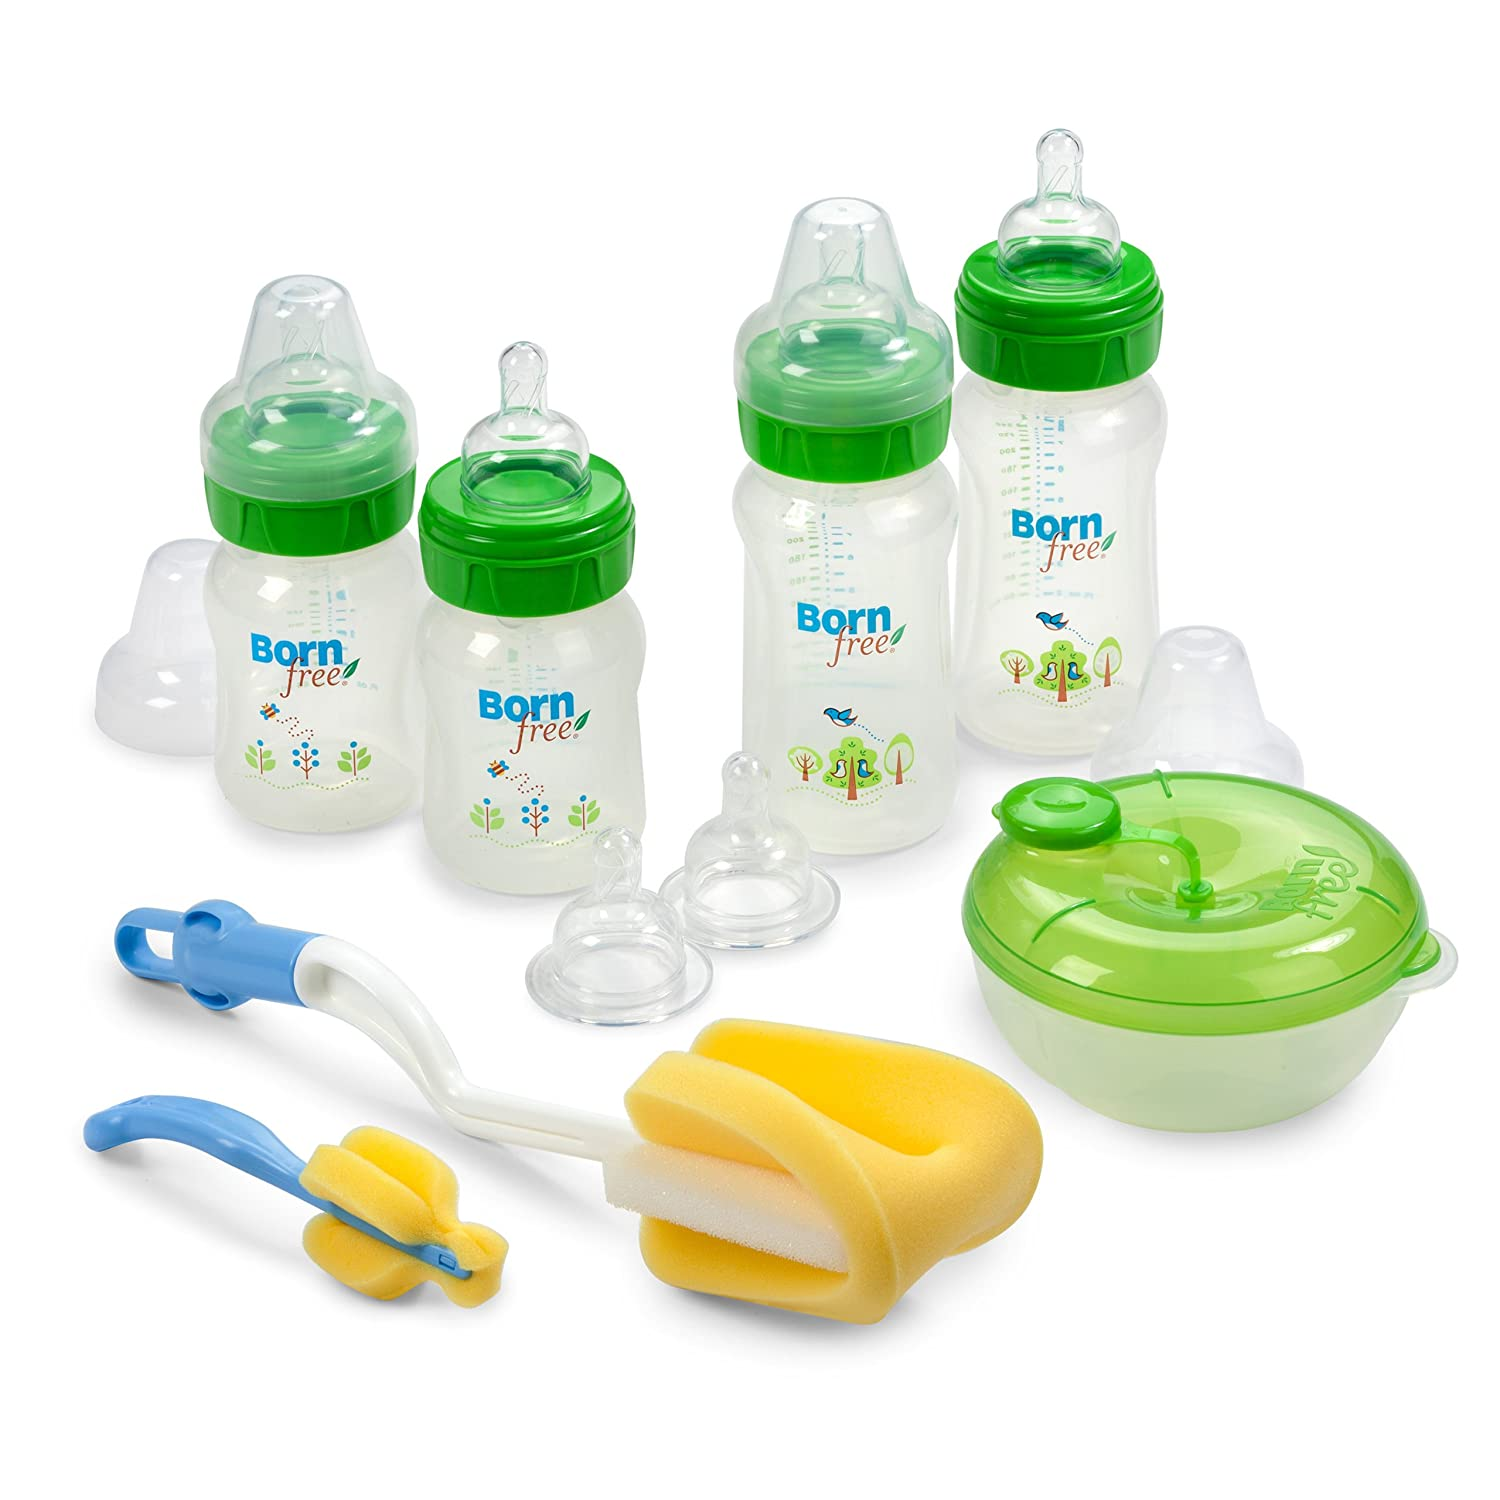 Born Free Decorated Plastic Bottle Gift Set by BornFree   B007QWOE70